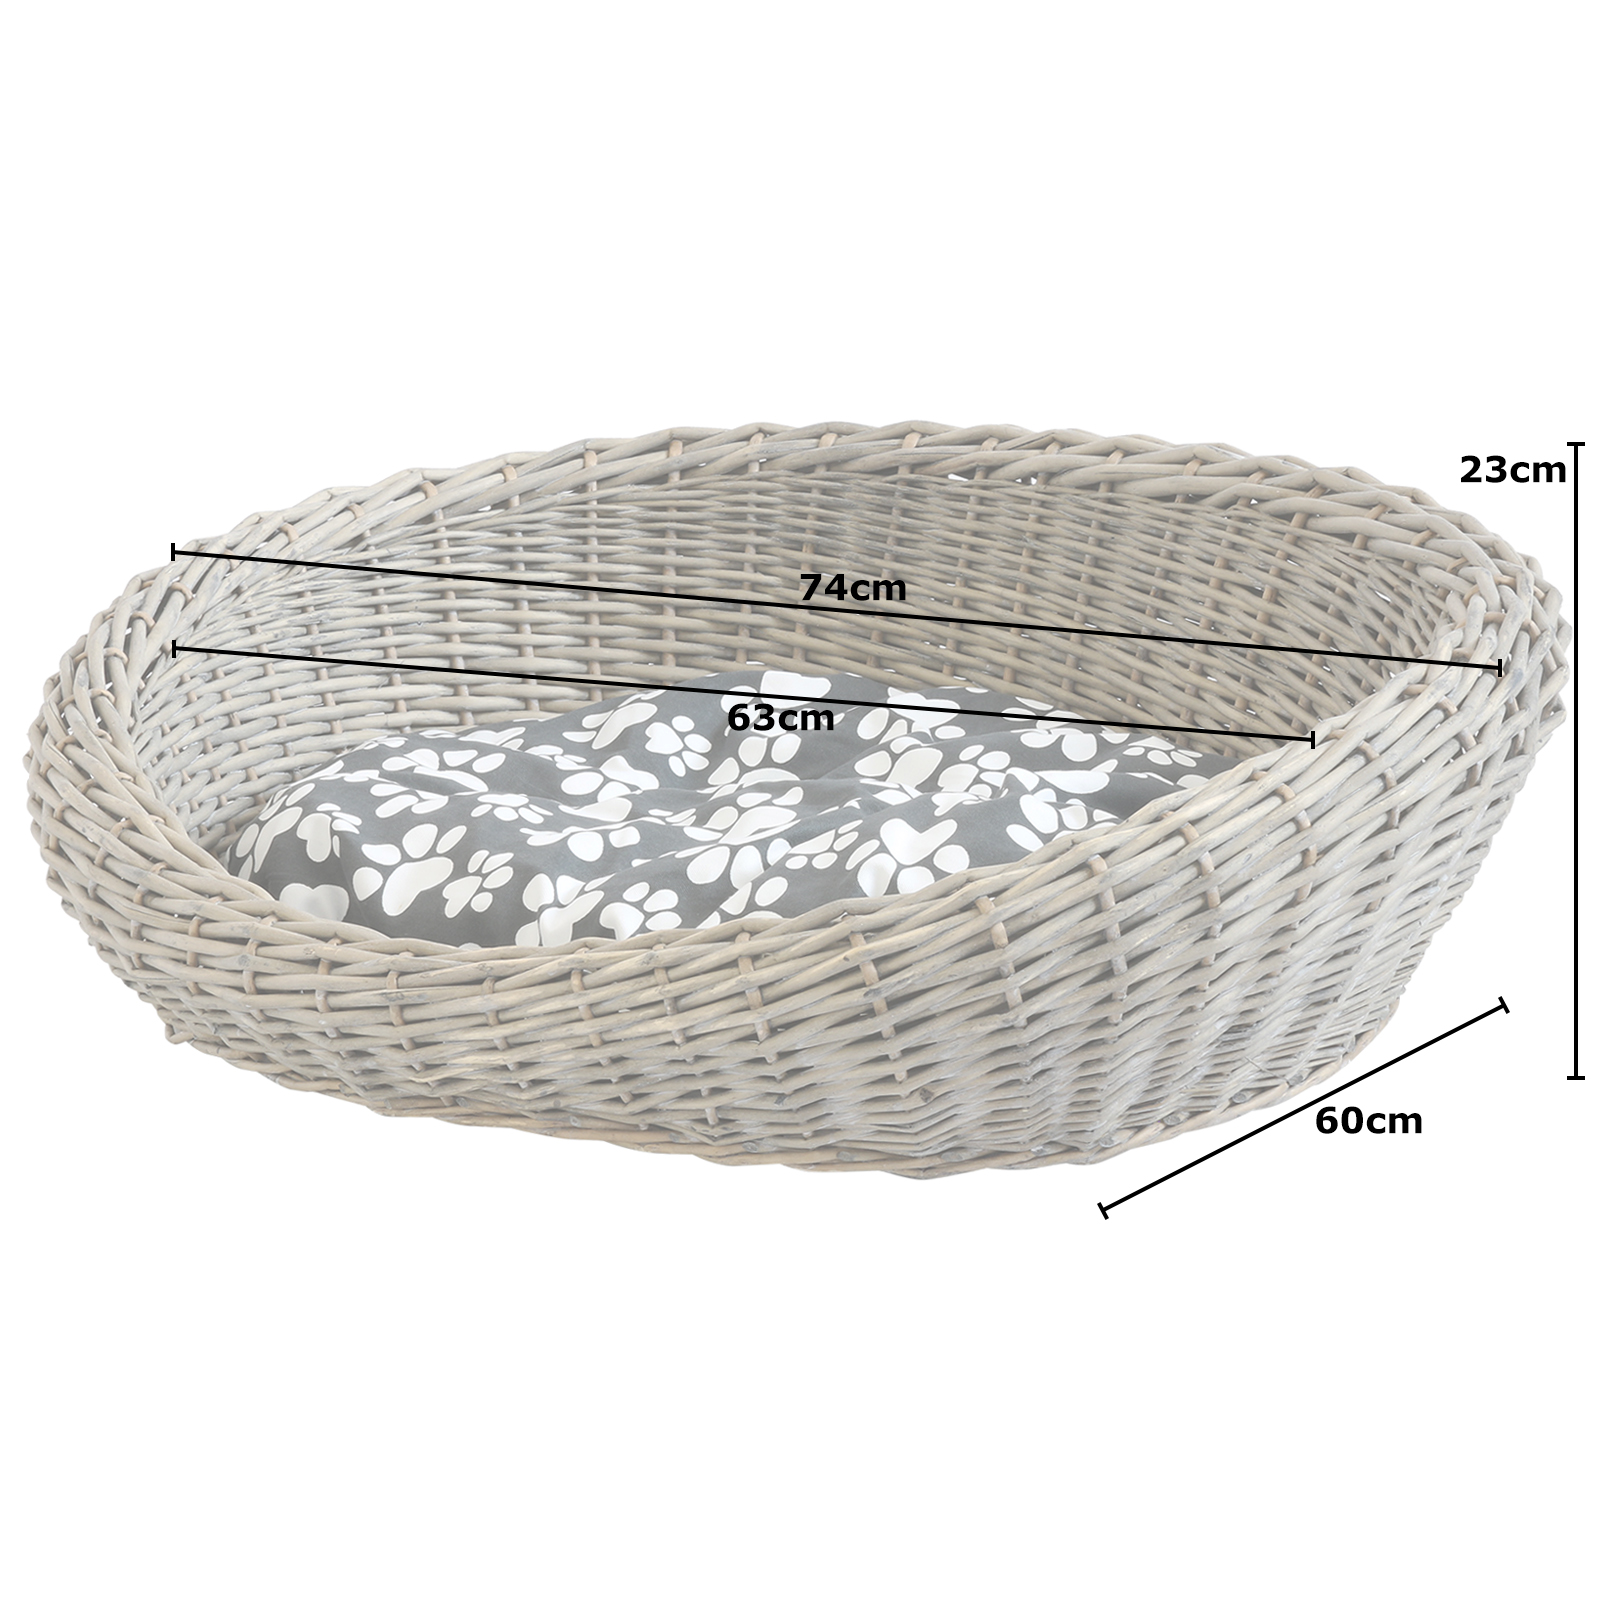 Me And My Pets Woven Dog Basket